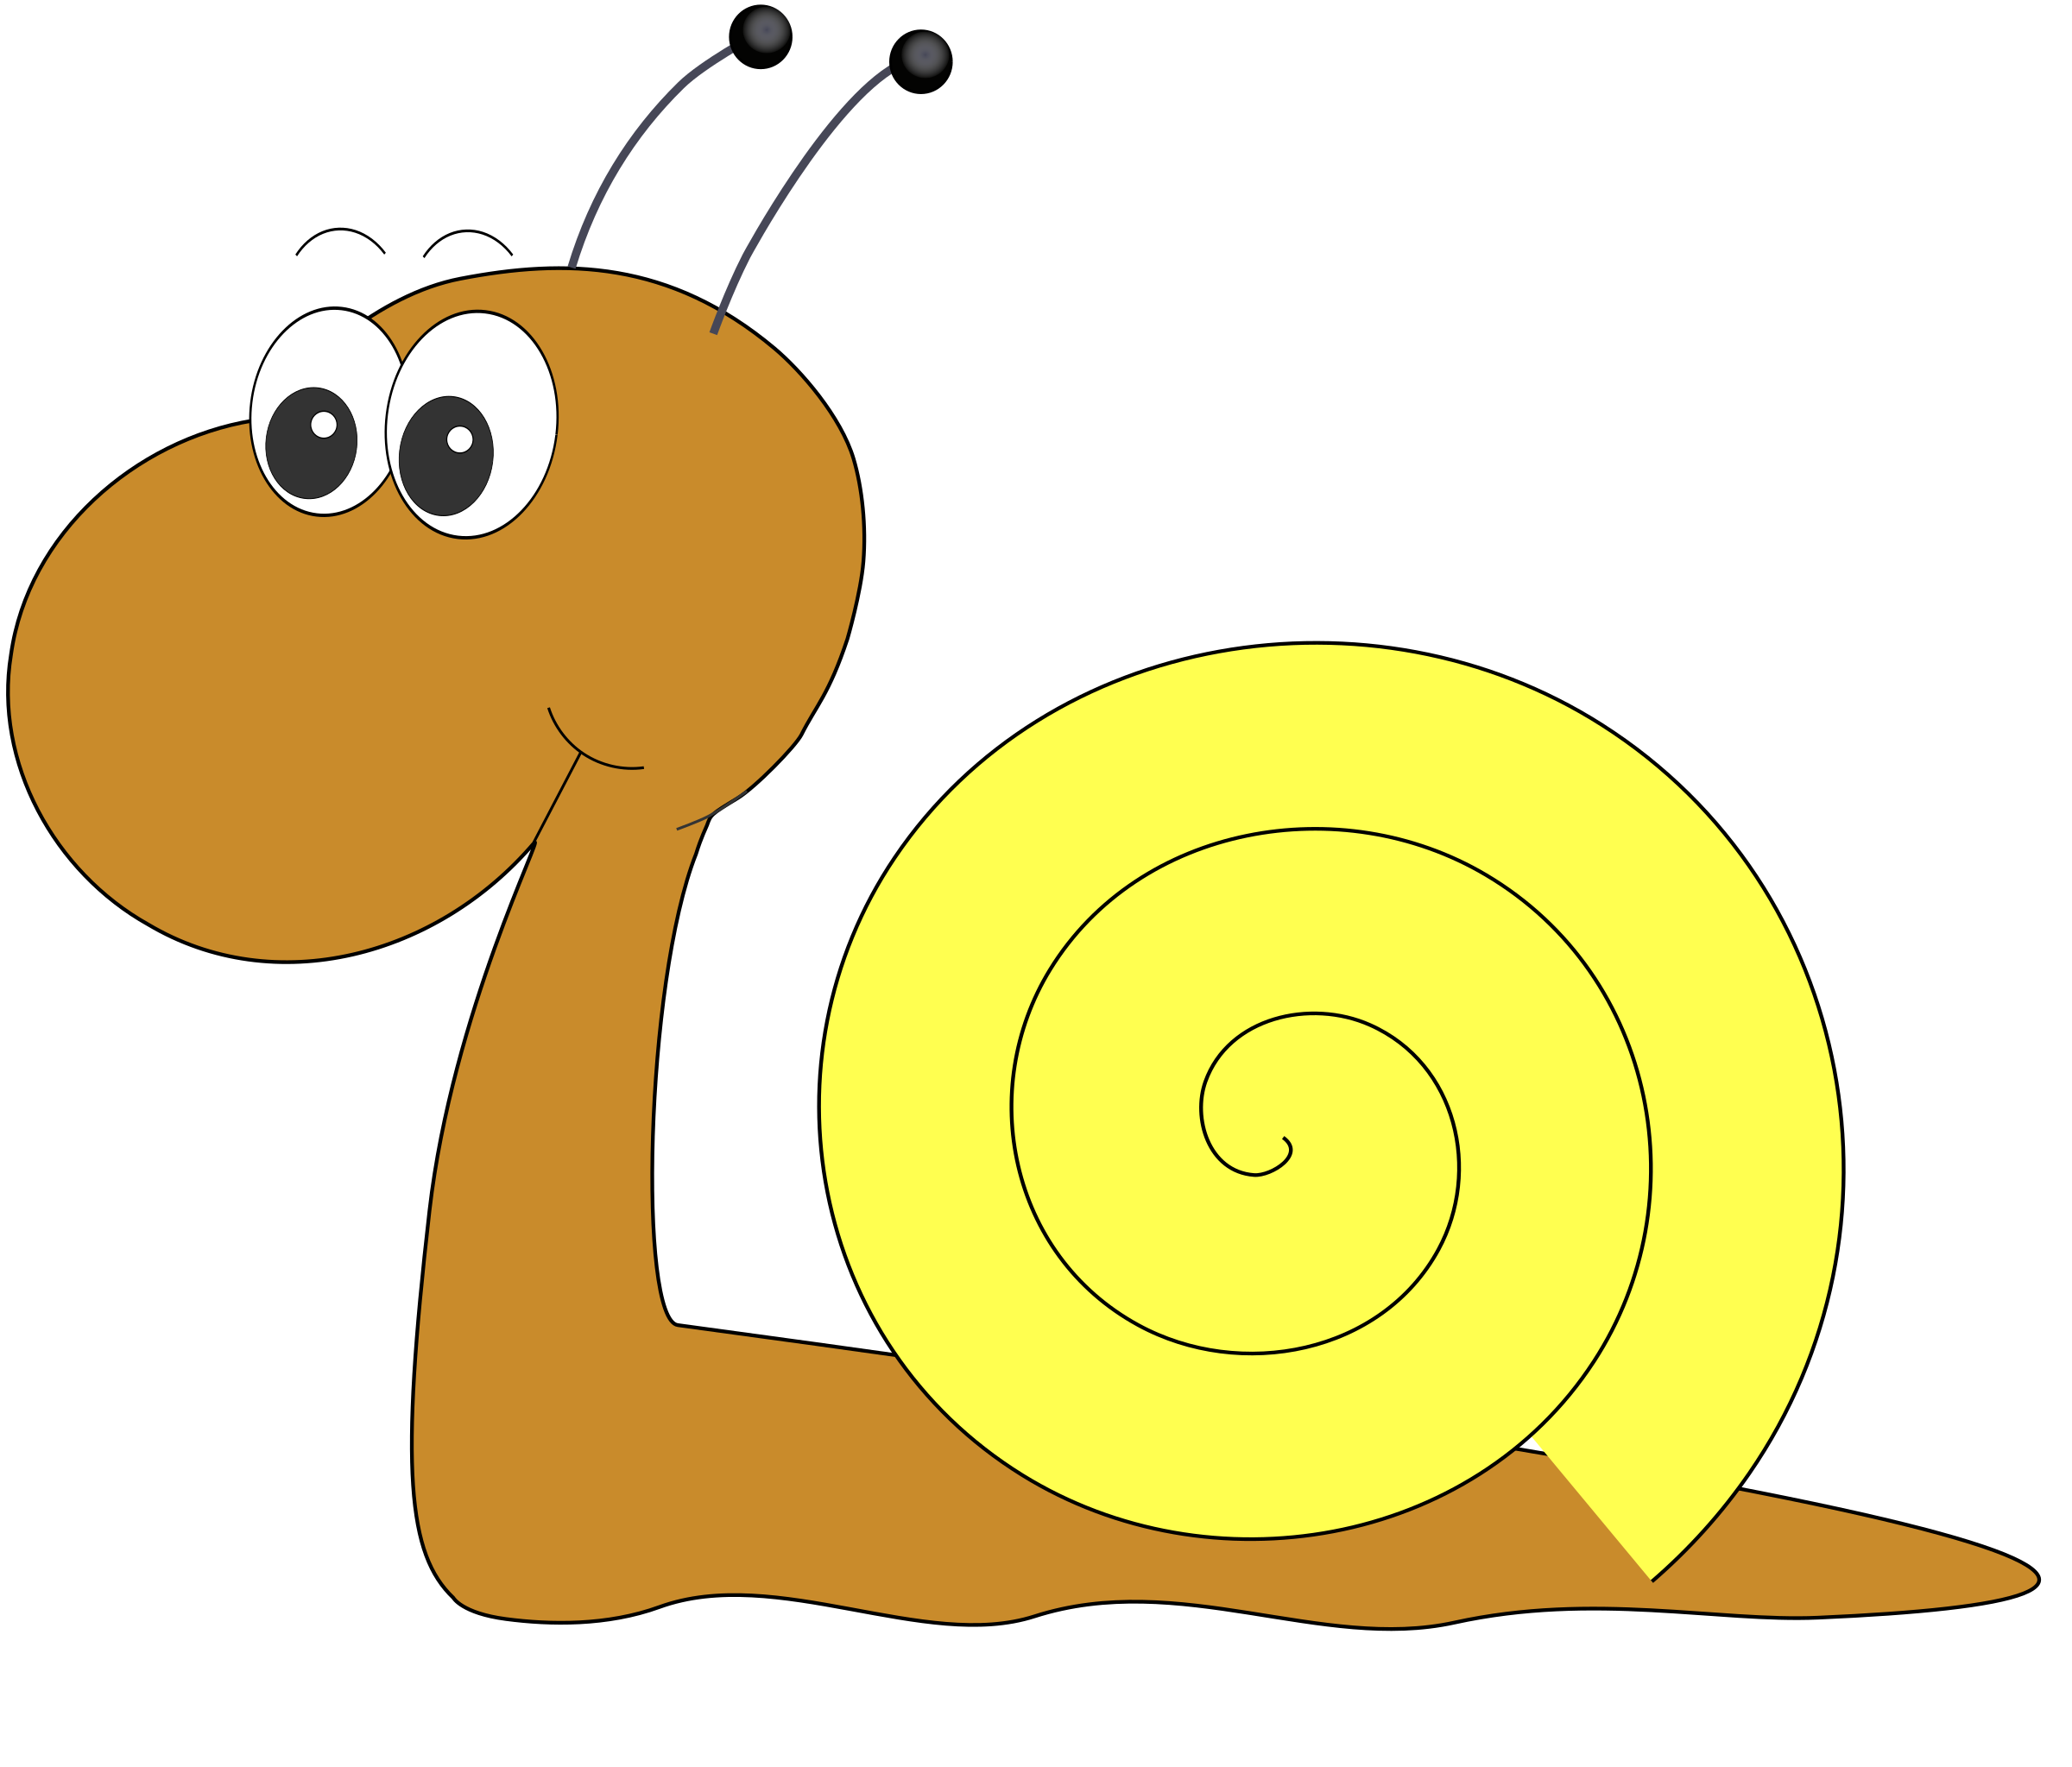 Snail graphic vector png. Schnecke by doppelg free